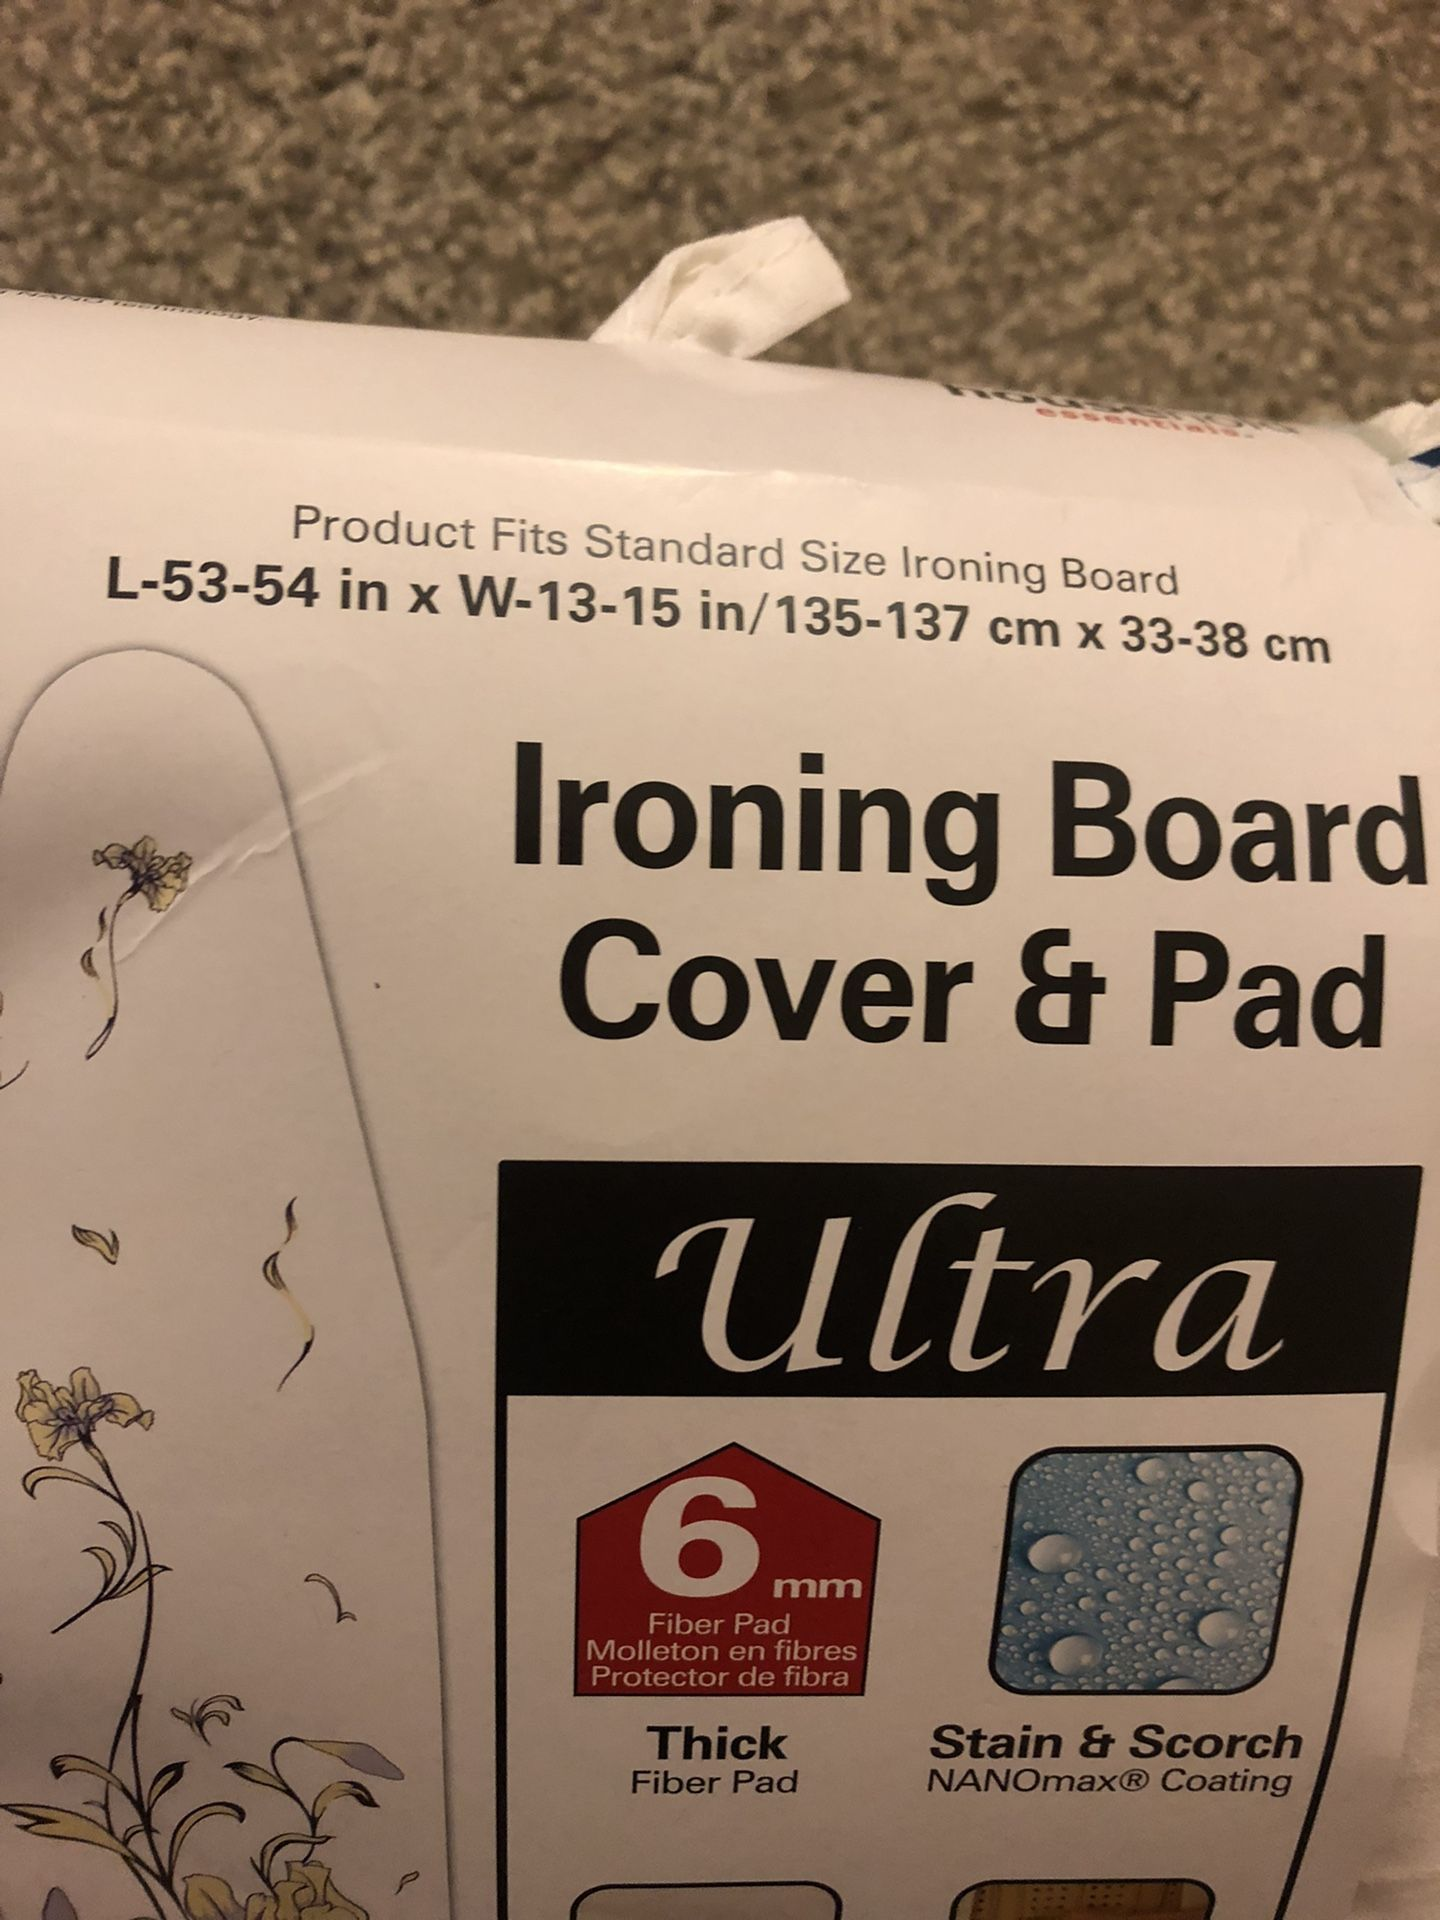 Ultra Iron Board Cover: Help my girlfriend doesn't think I can sell this! Help me to prove her wrong